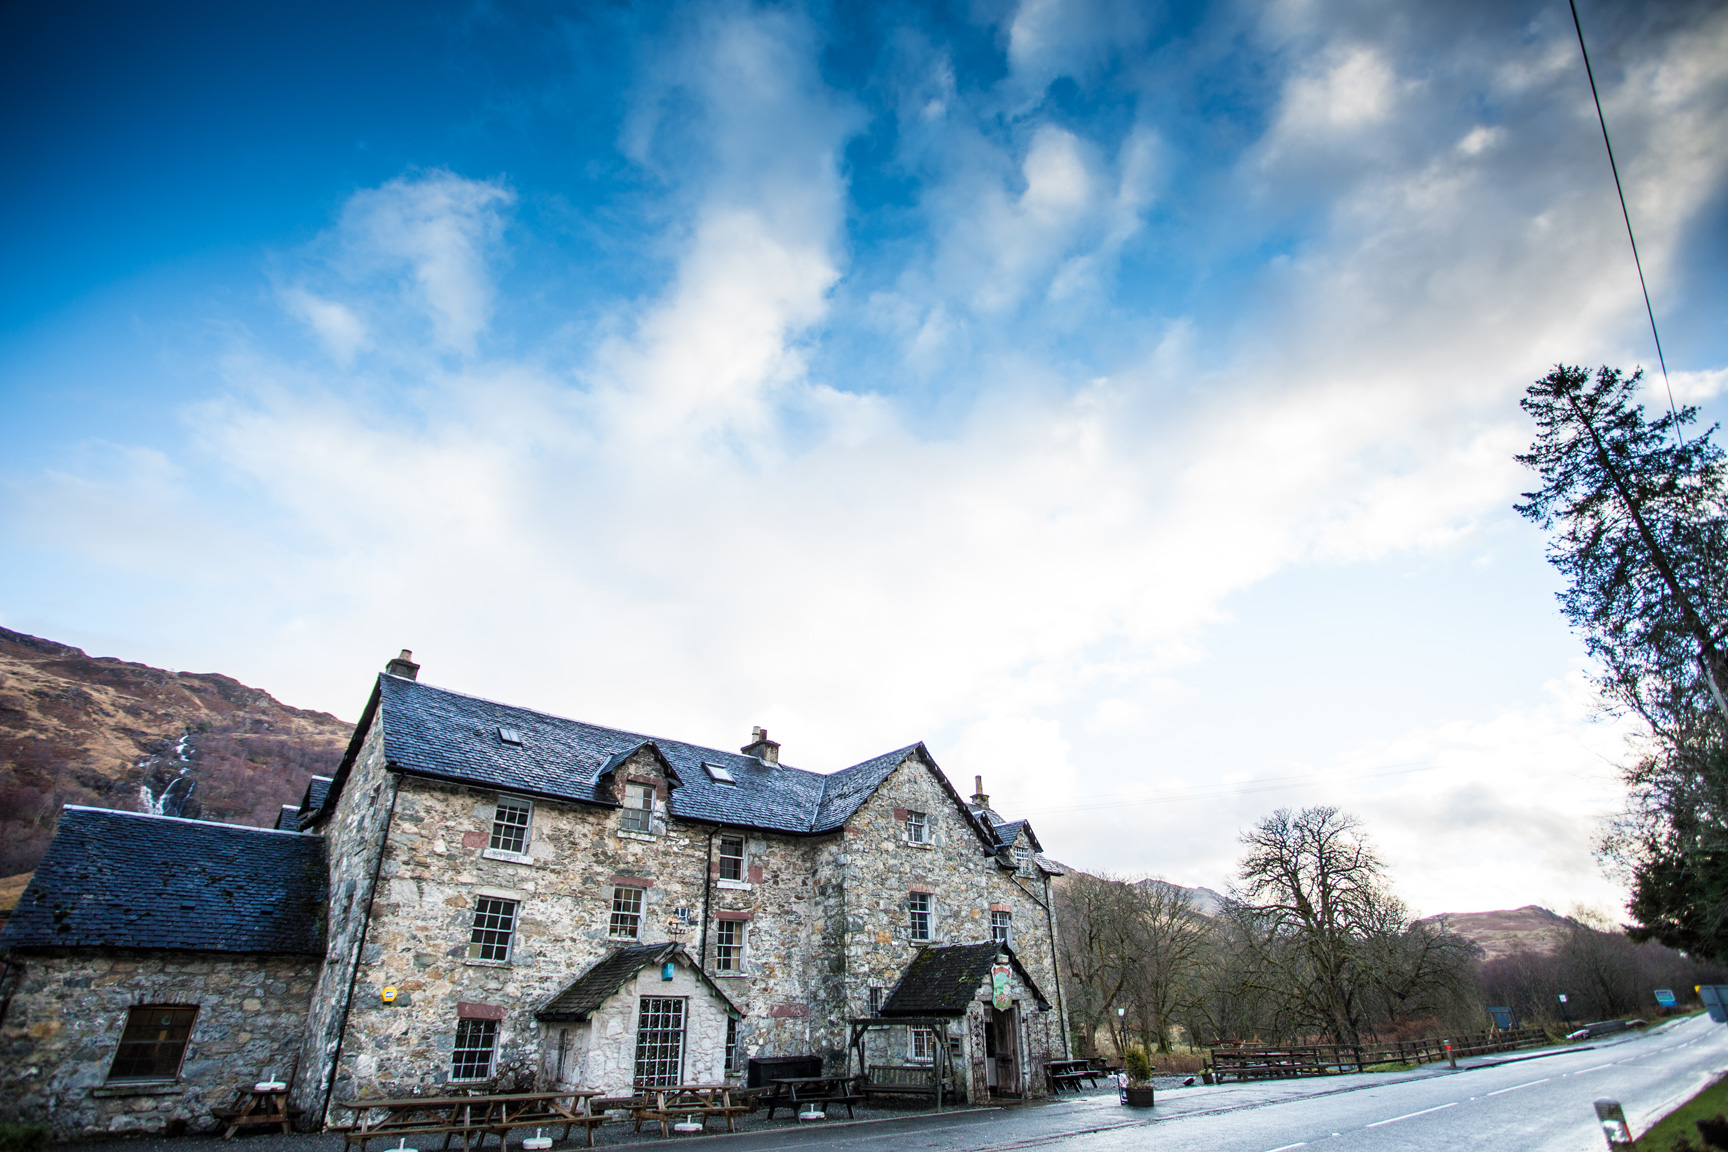 The Drovers Inn >> The Drovers Inn Loch Lomond Hotel Restaurant And Bar With Live Music